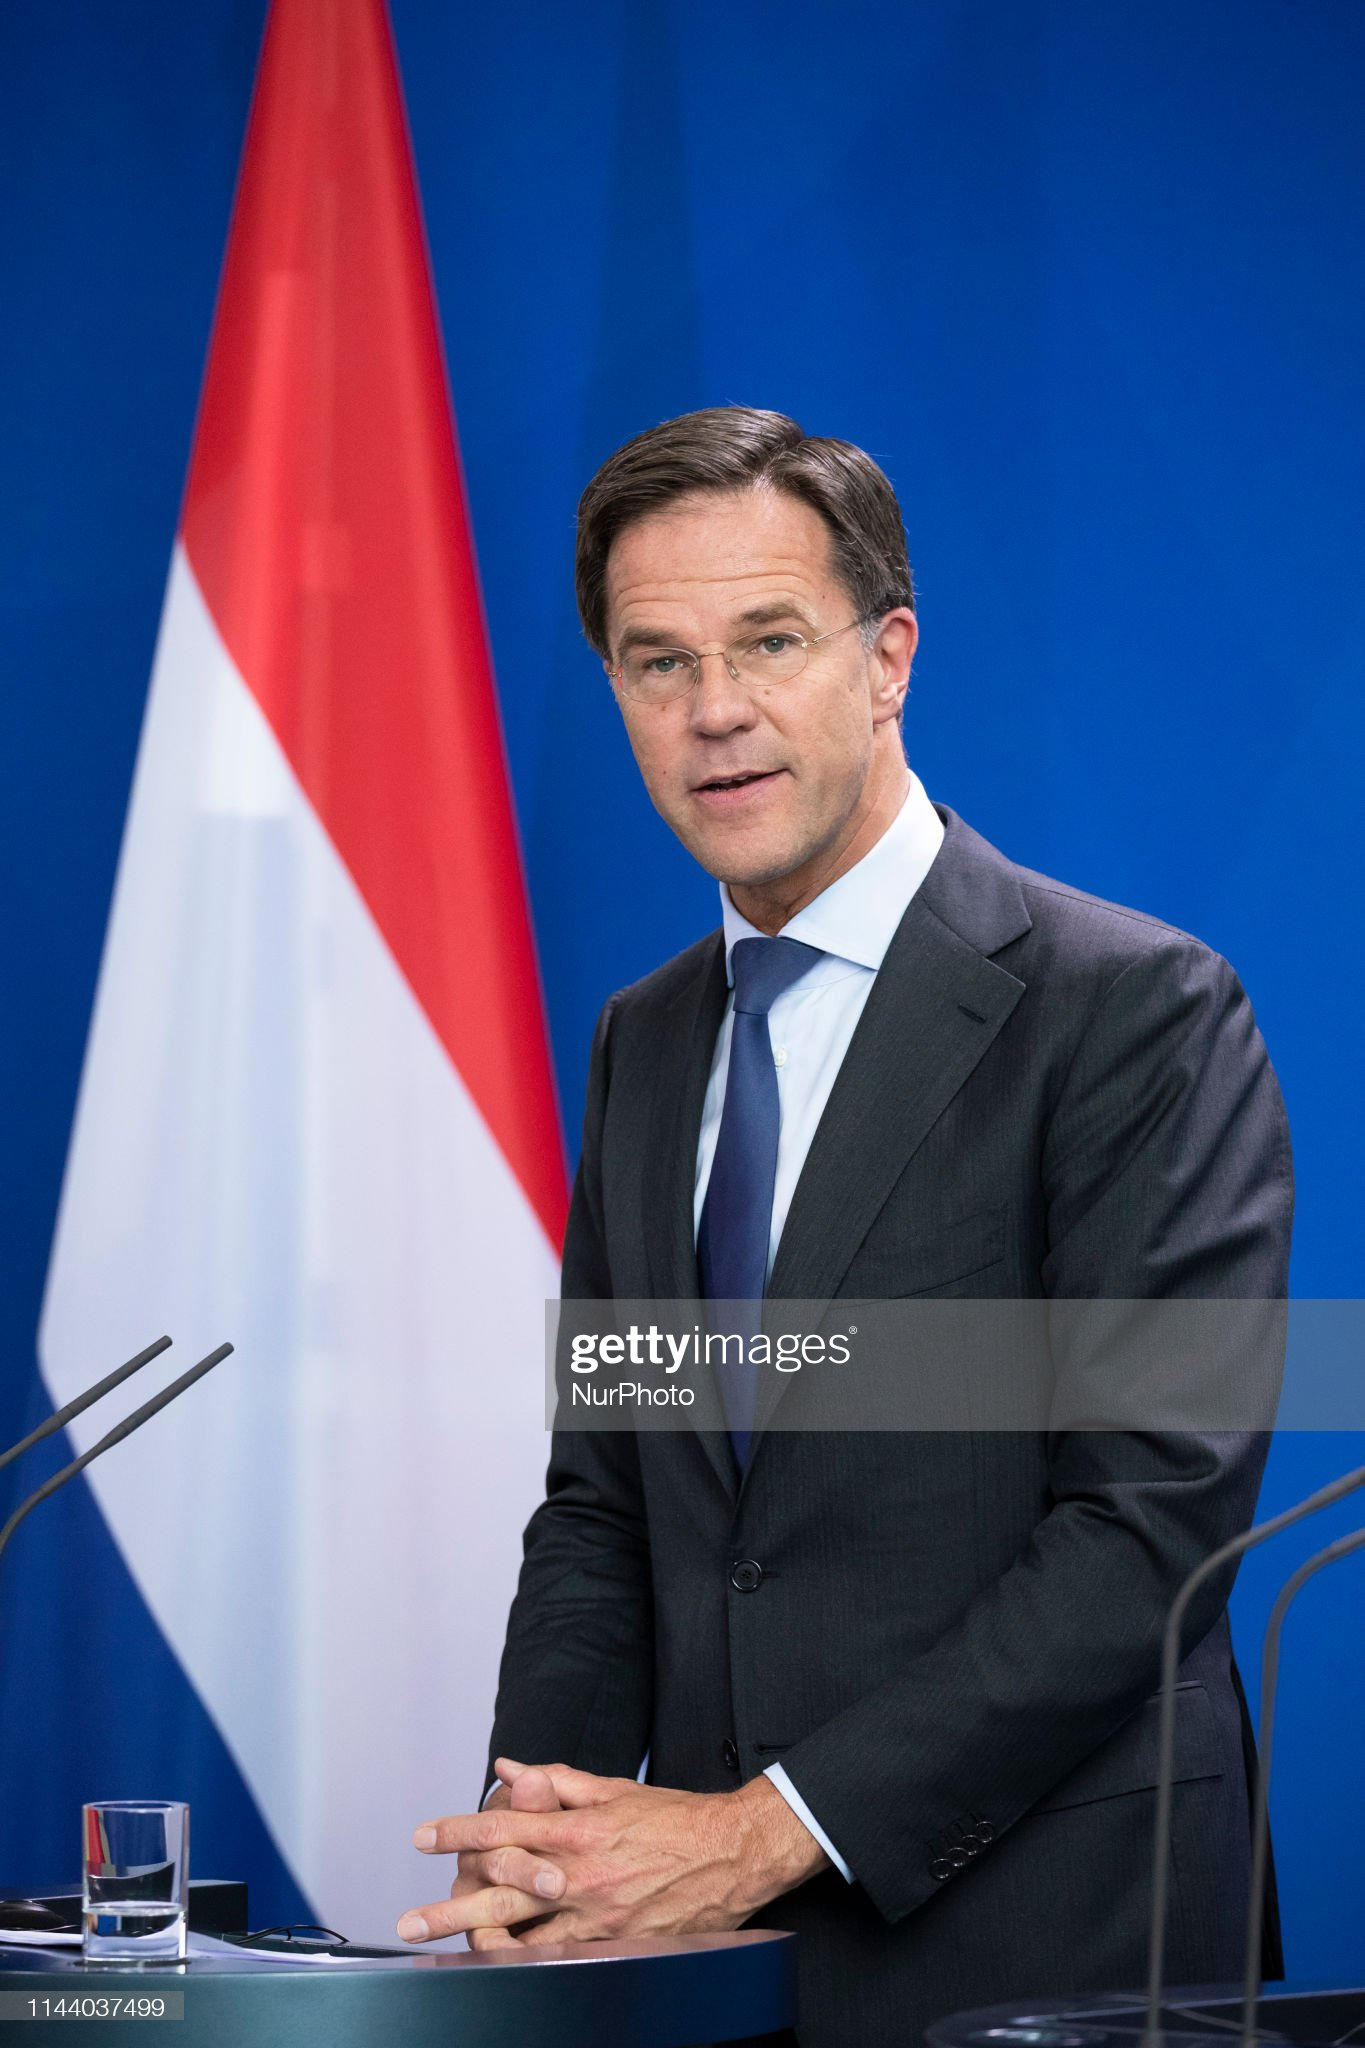 ¿Cuánto mide Mark Rutte? - Altura - Real height Prime-minister-of-the-netherlands-mark-rutte-is-pictured-during-a-picture-id1144037499?s=2048x2048